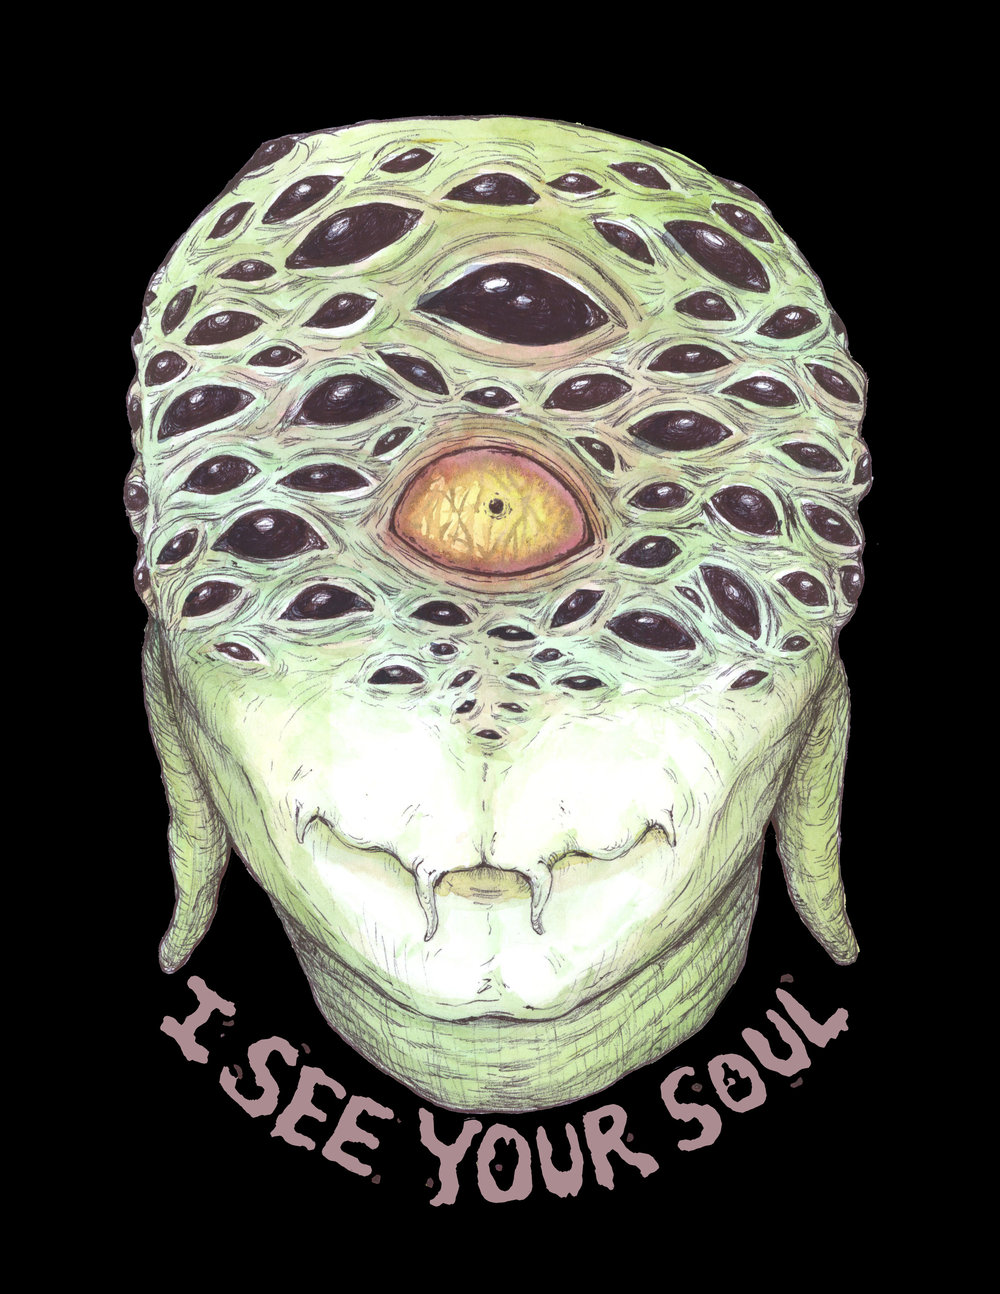 I See Your Soul Poster  €9.99–€14.99 Available in A4, A3